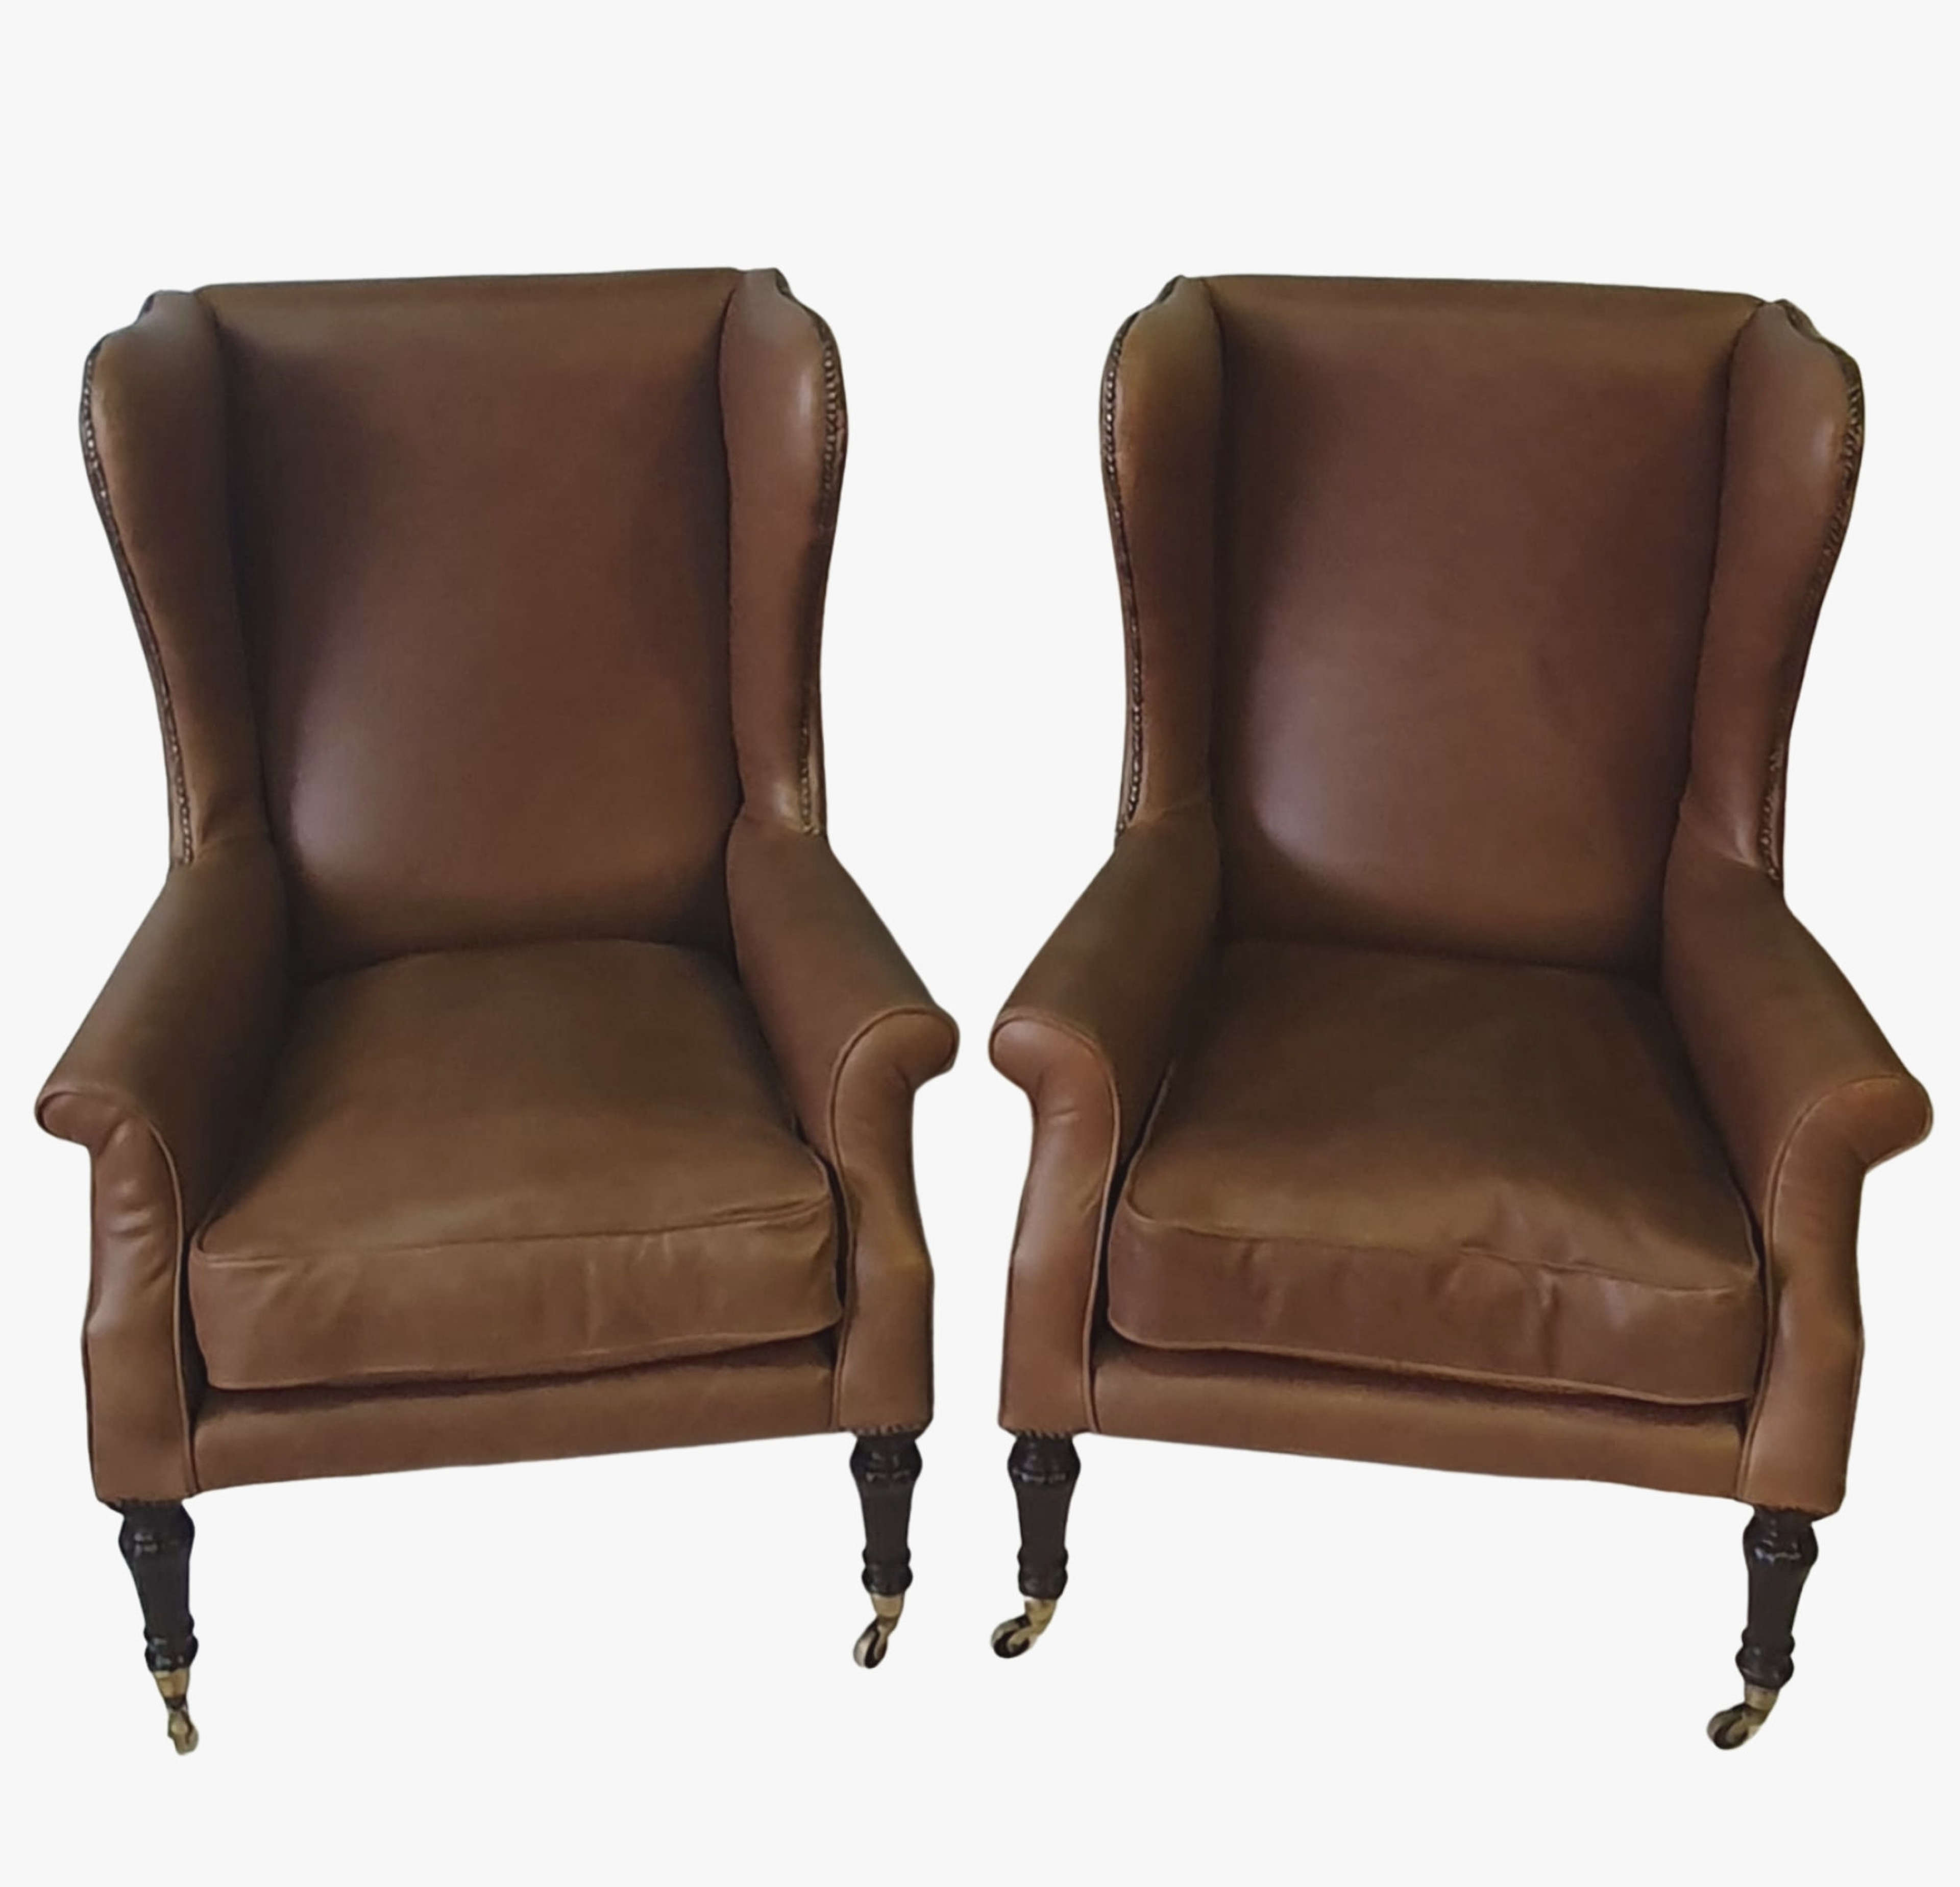 19th Century Pair of Wingback Leather Armchairs